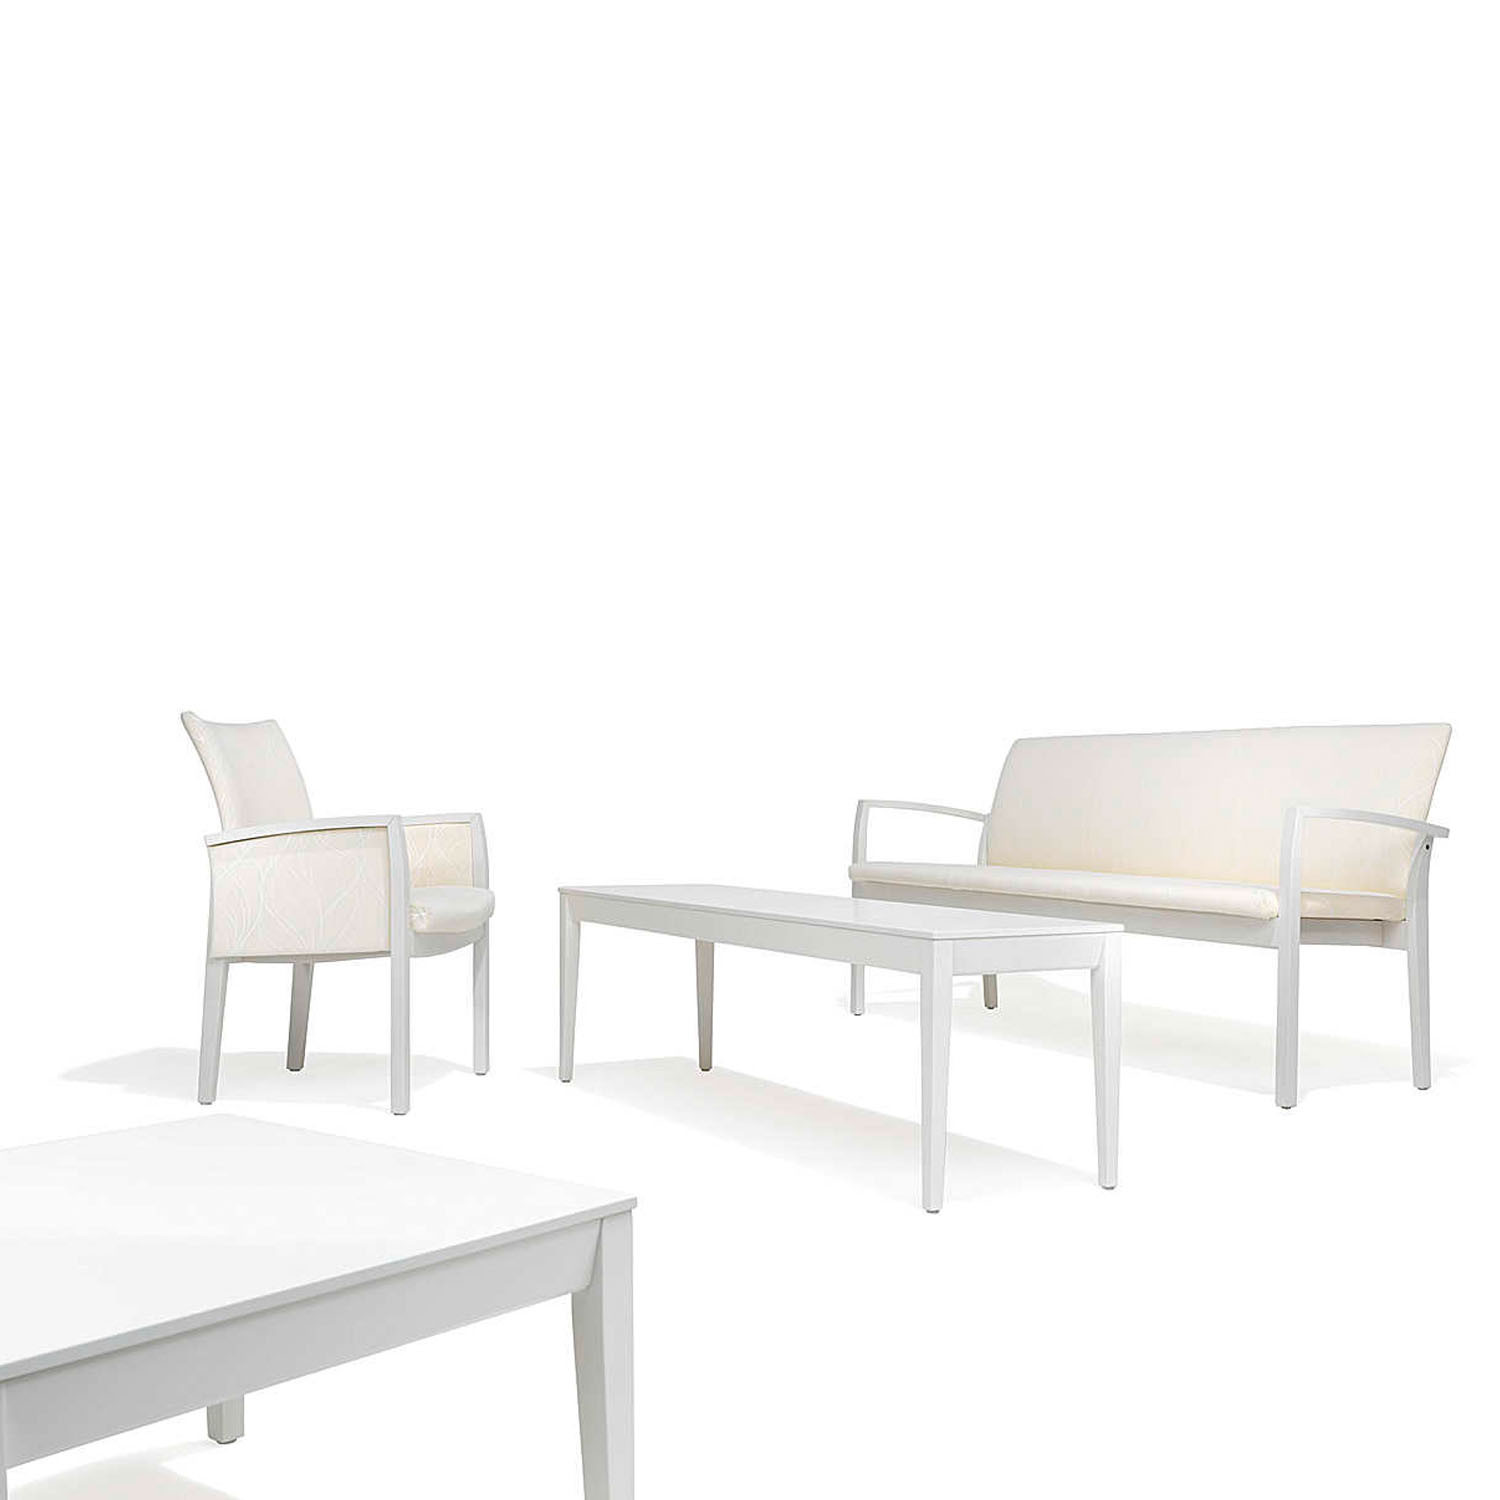 3700 Palato Bench is available as a 2 and 3 seater